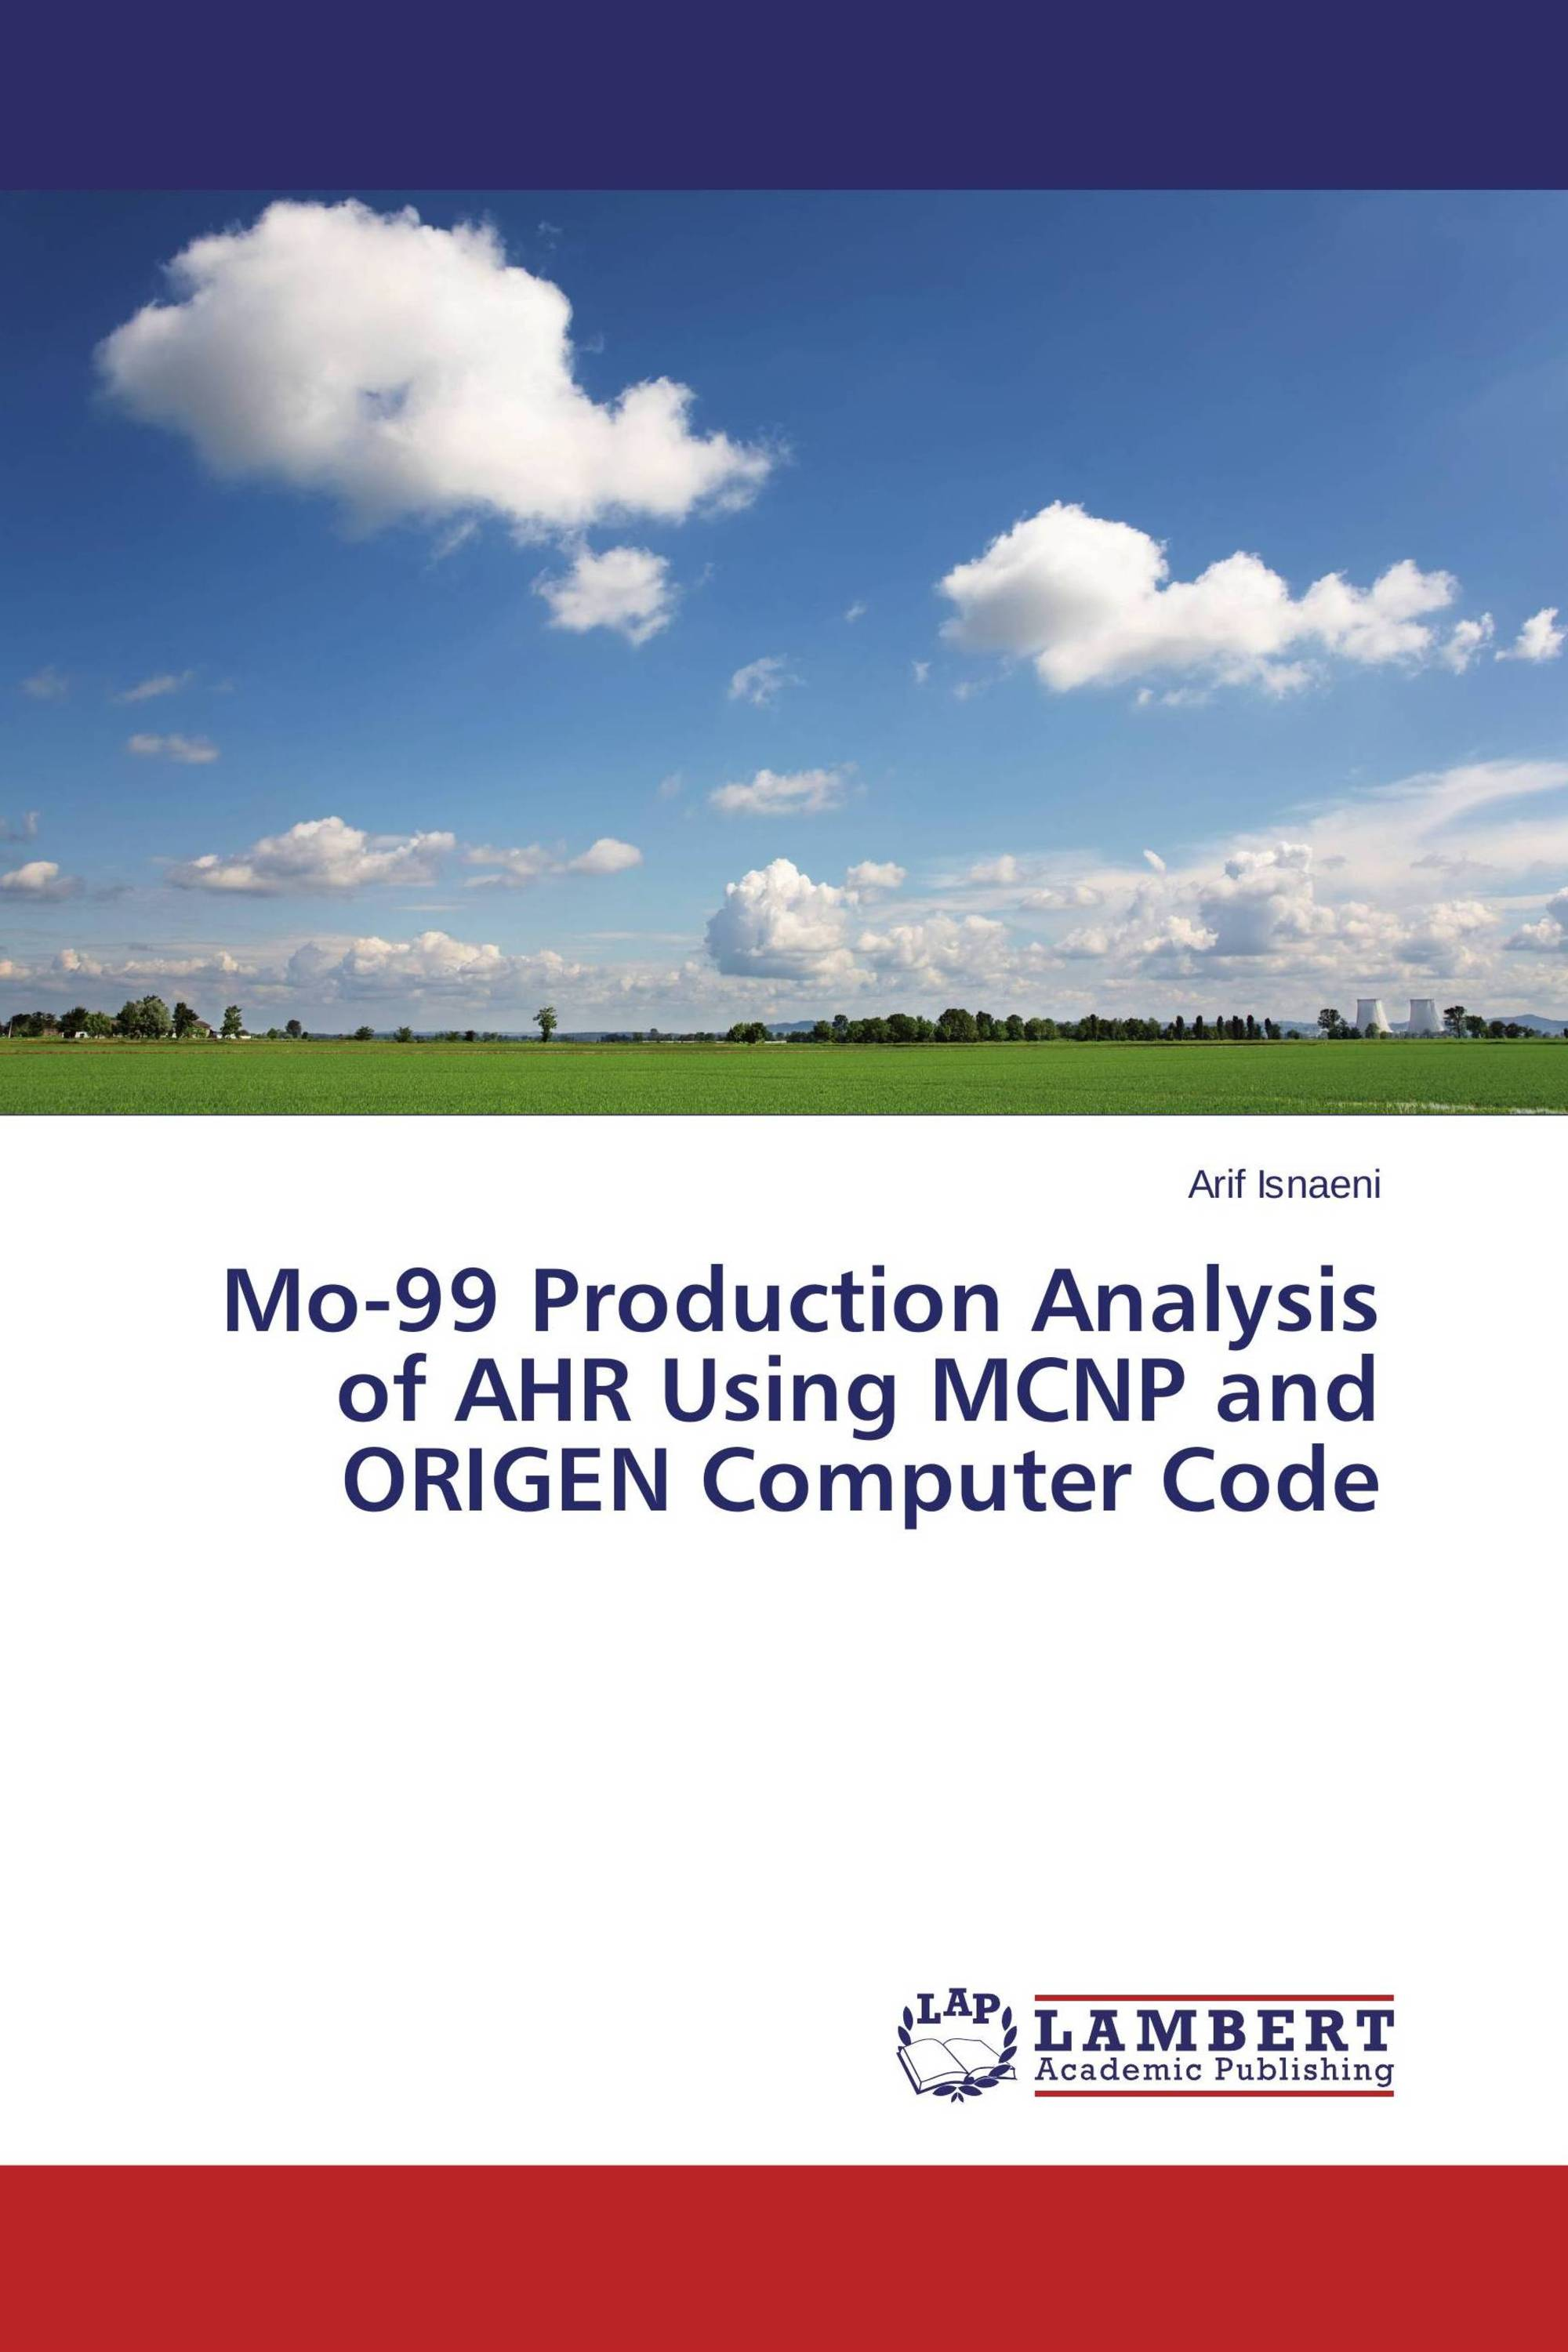 Mo-99 Production Analysis of AHR Using MCNP and ORIGEN